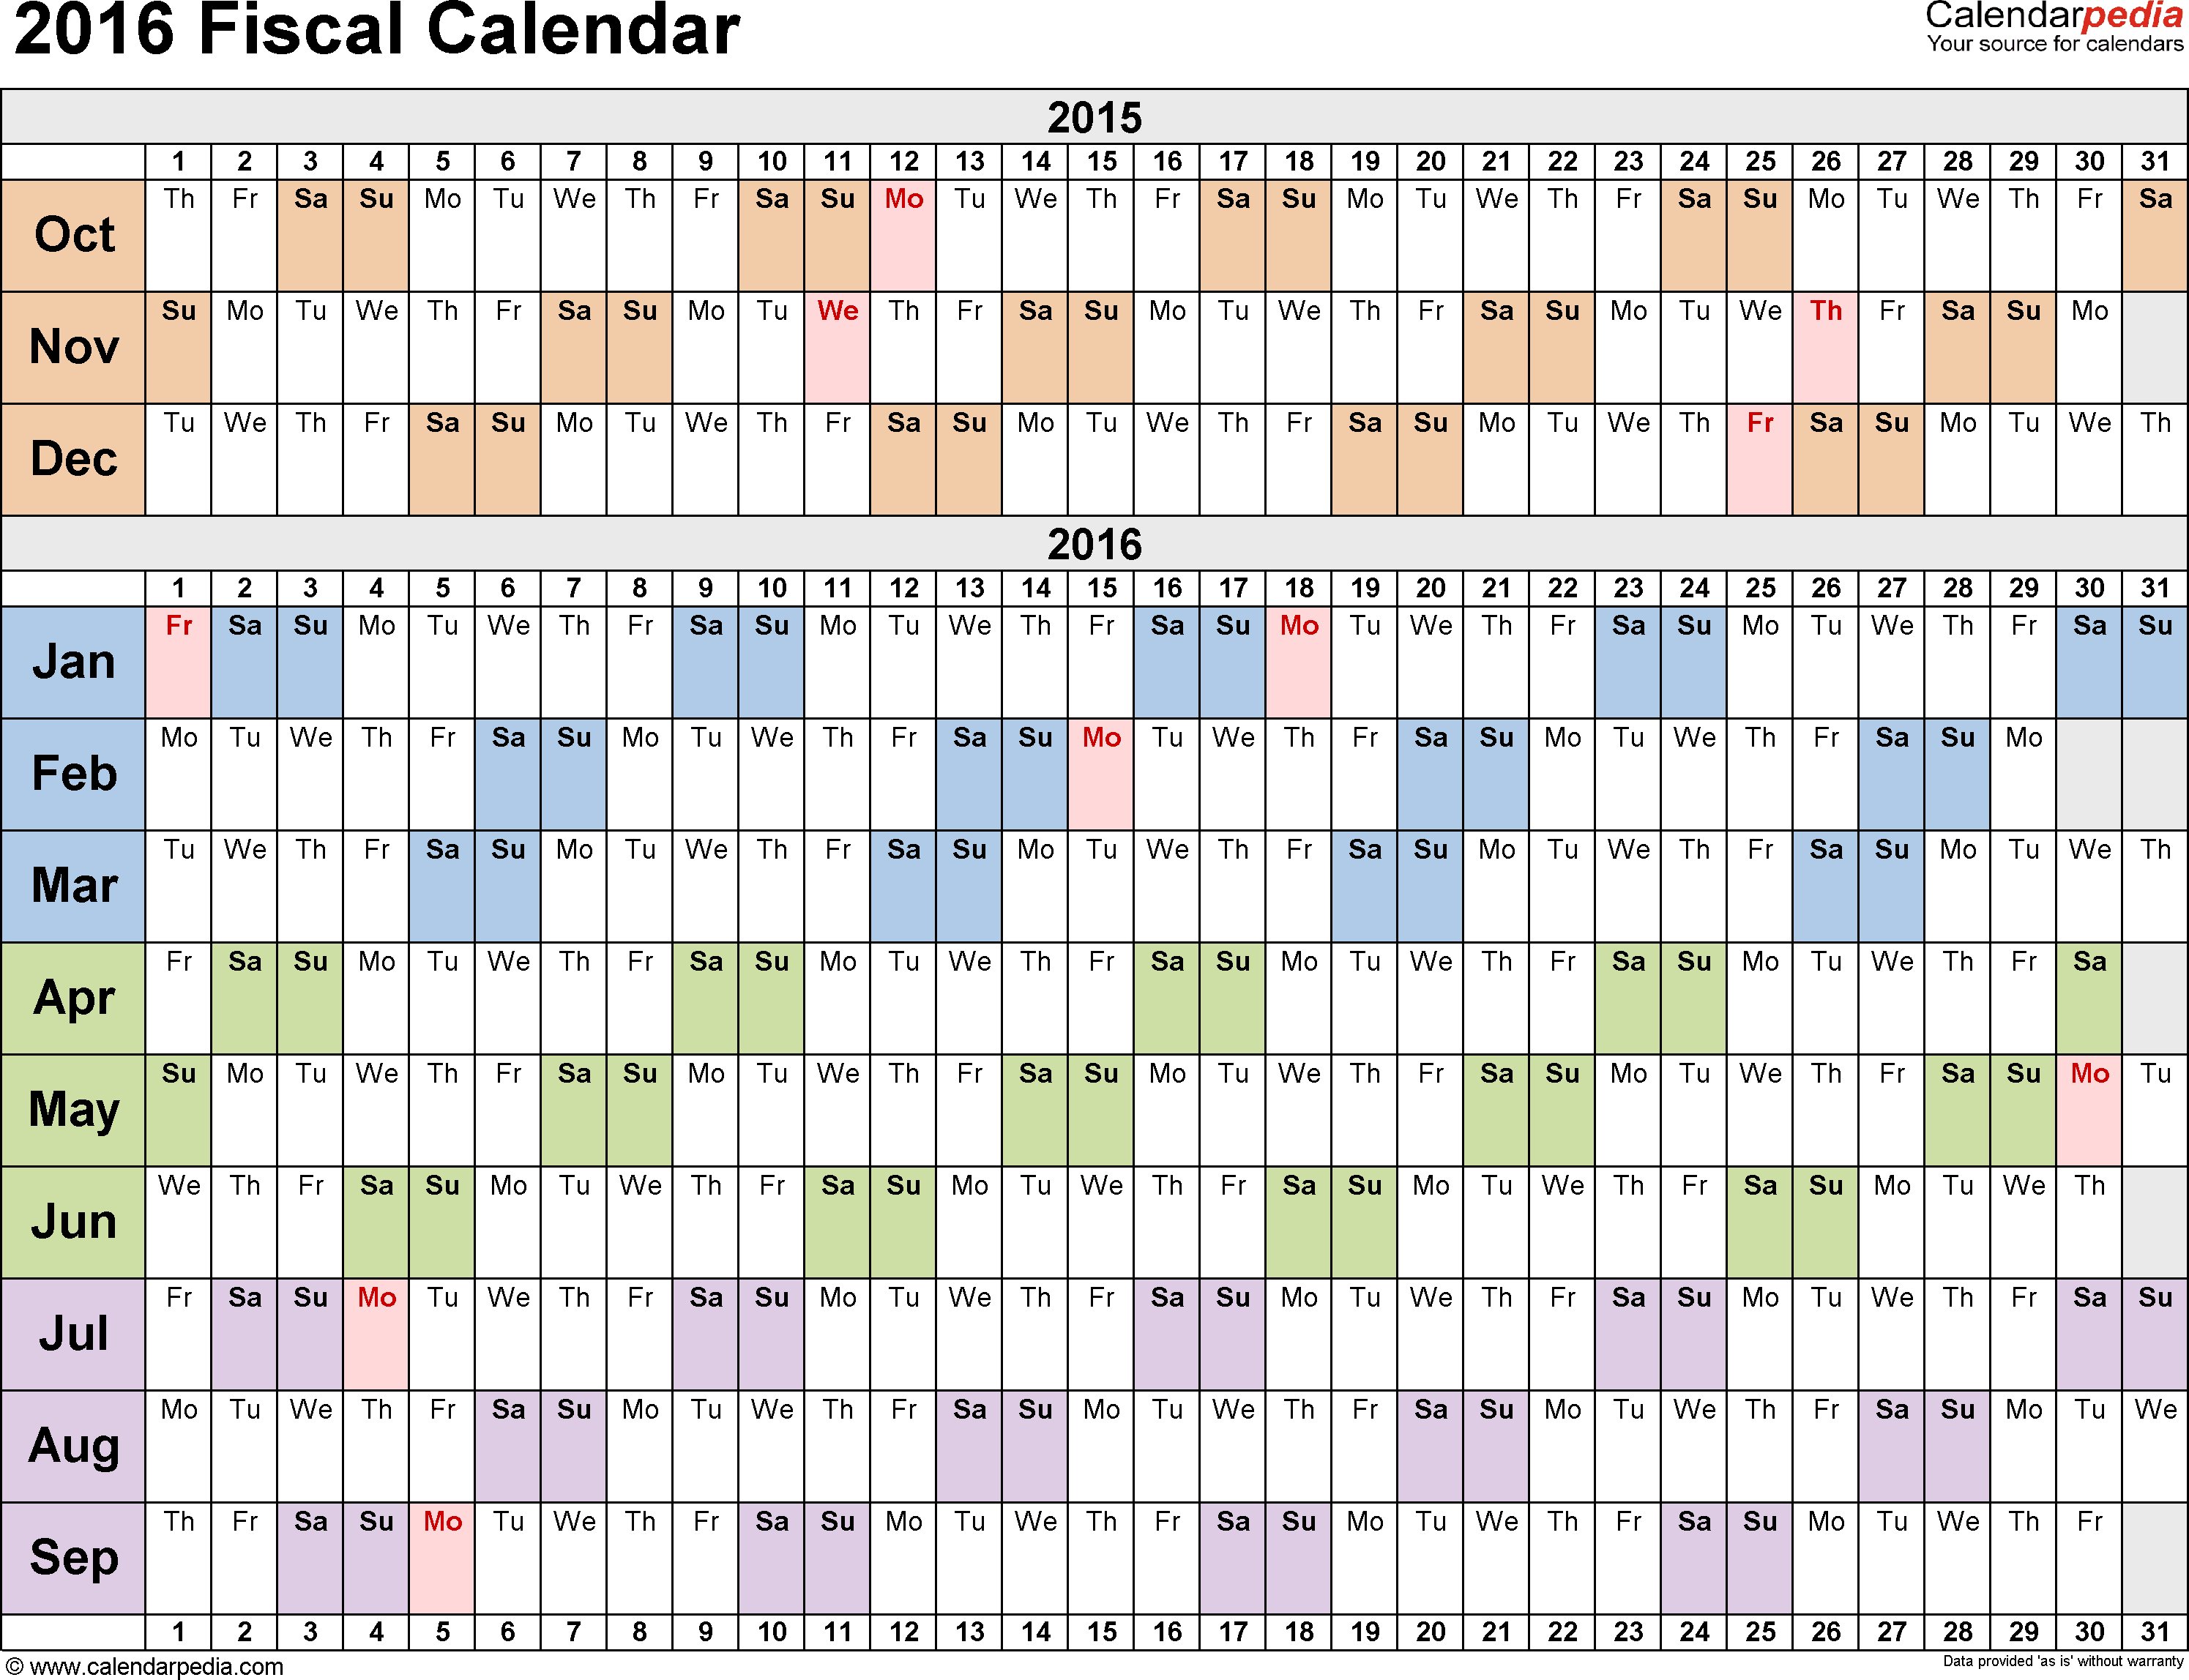 Download Template 3: Fiscal year calendar 2016 in PDF format, landscape, 1 page, linear